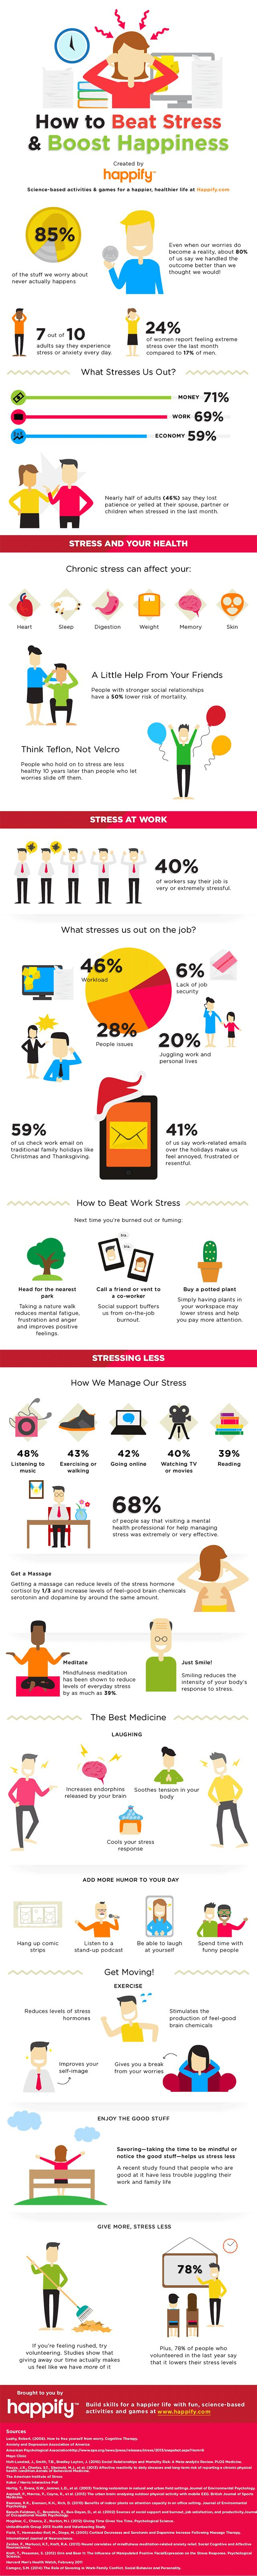 Top tips to staying stress free in the workplace infographic - Infographic How To Feel Happier And Less Stressed Stress Lessstress Freeways